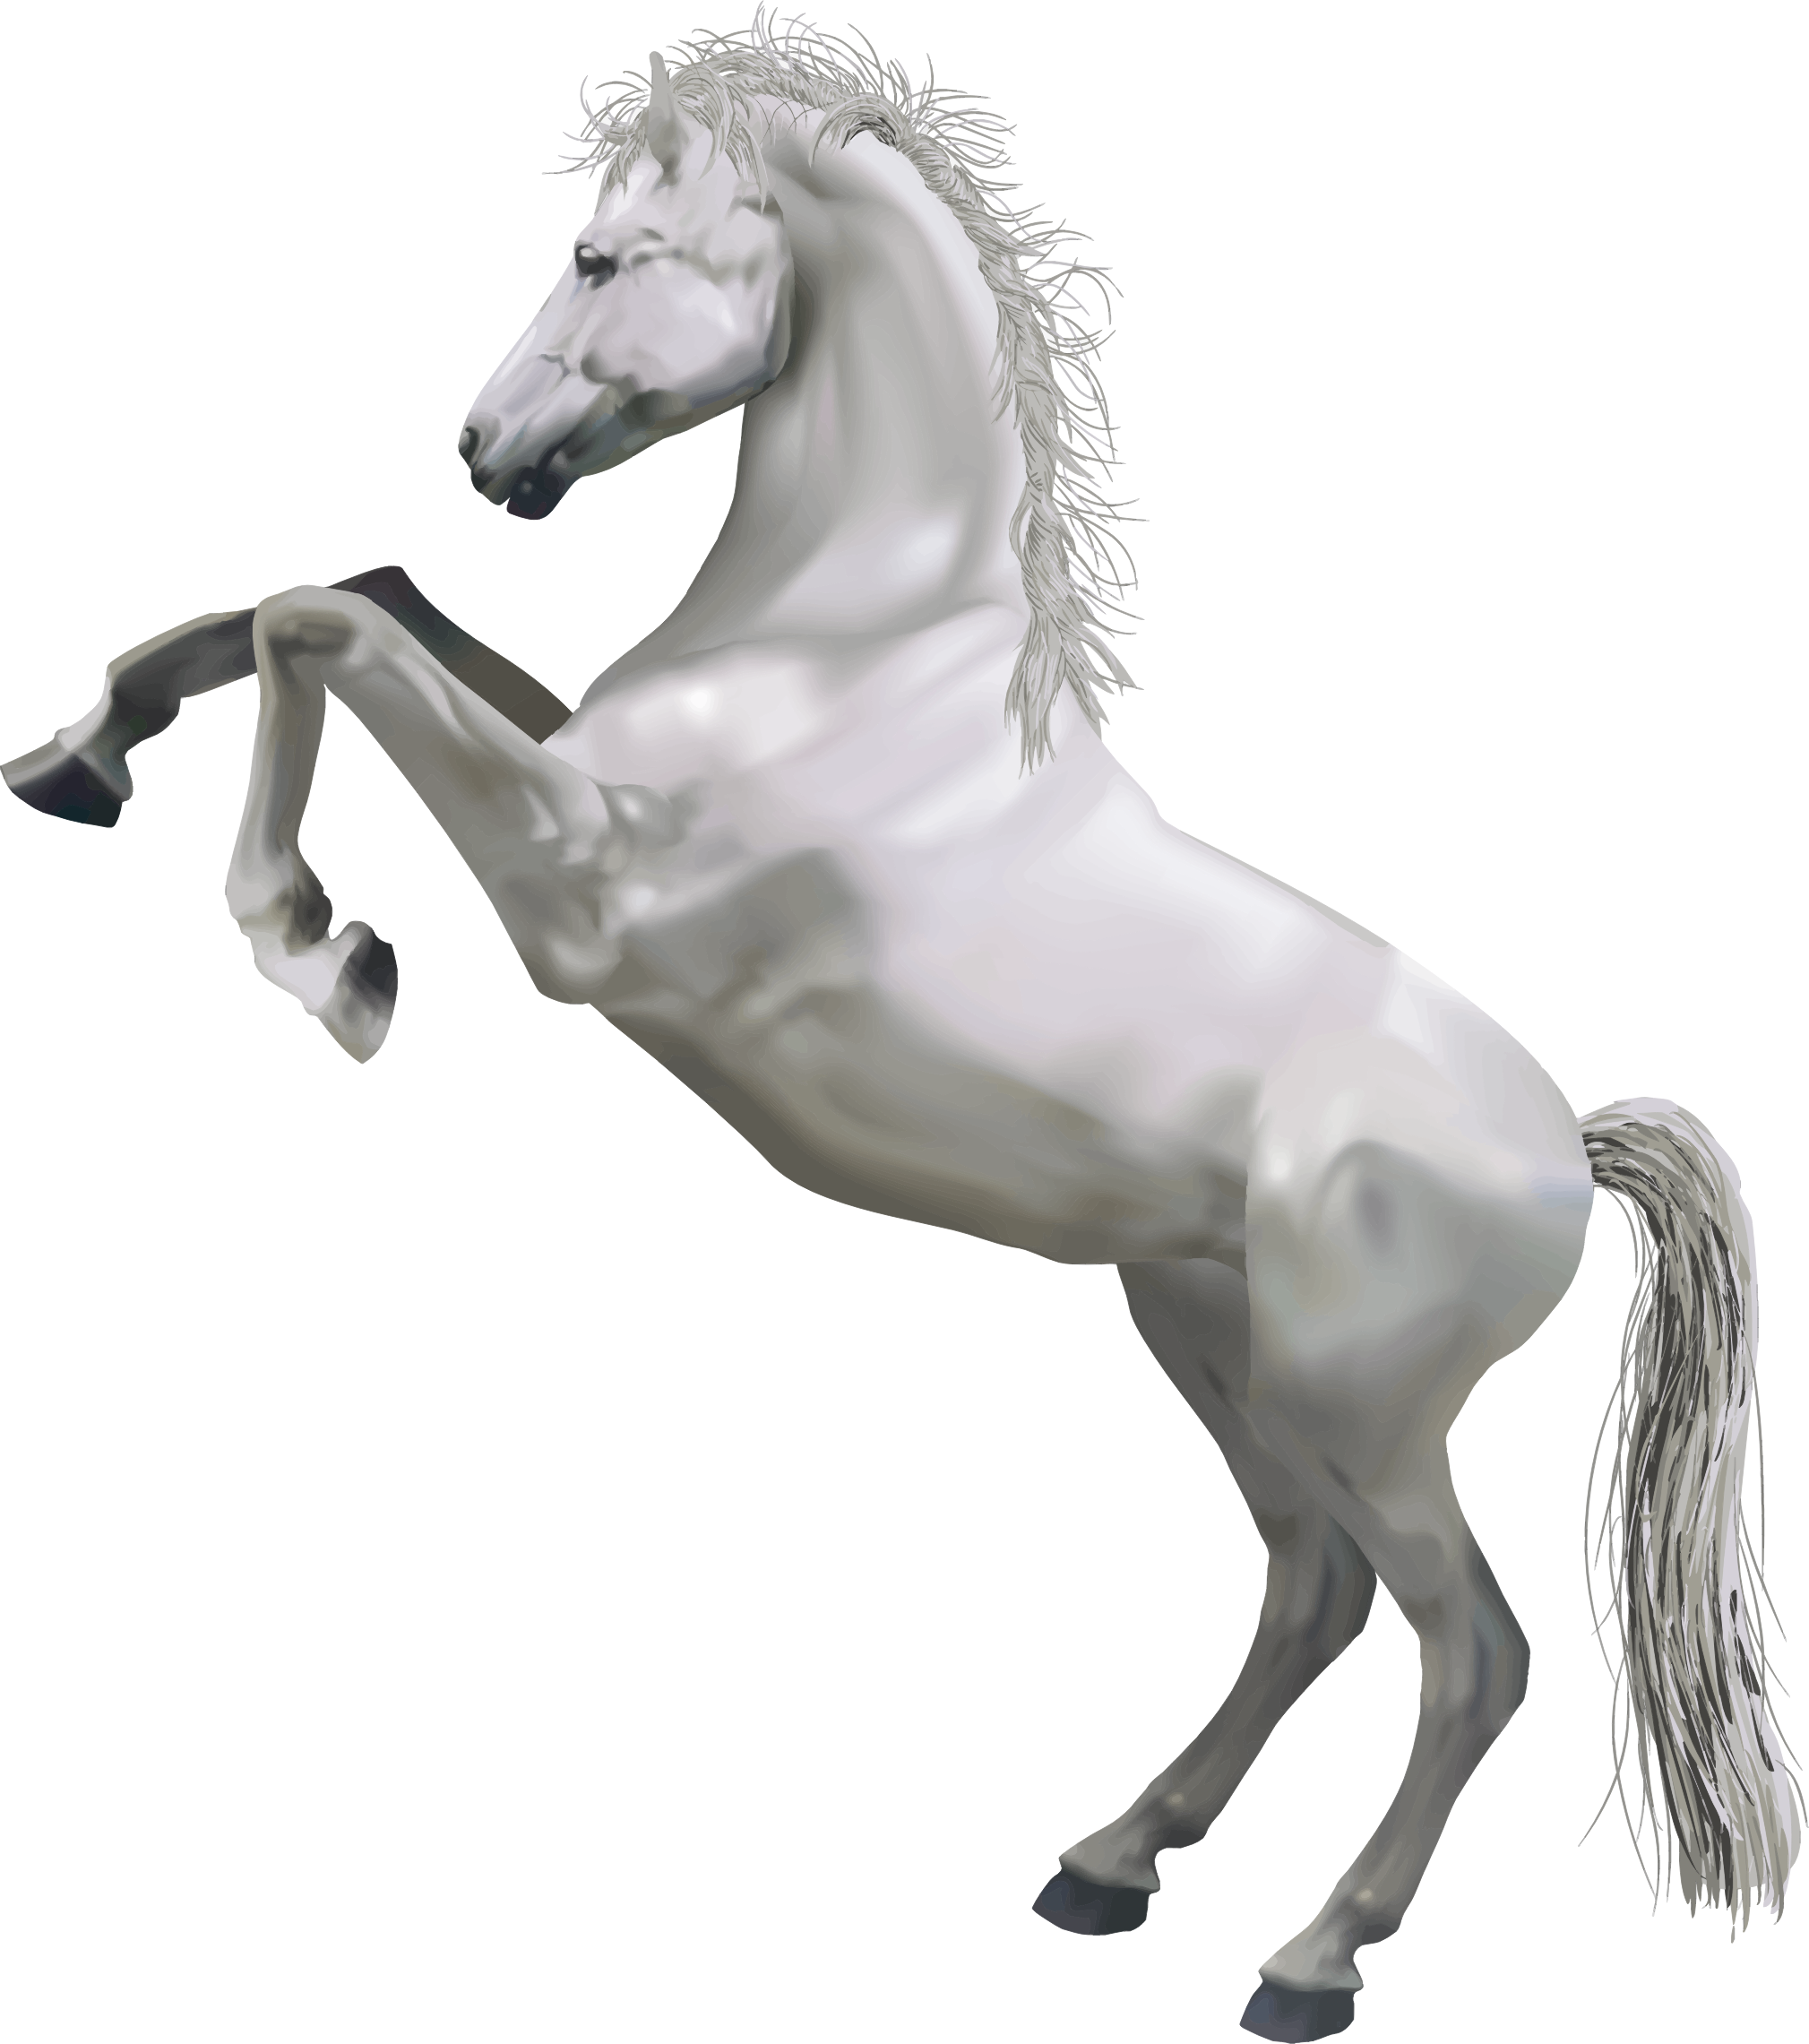 Download Horse PNG Pic For Designing Projects.